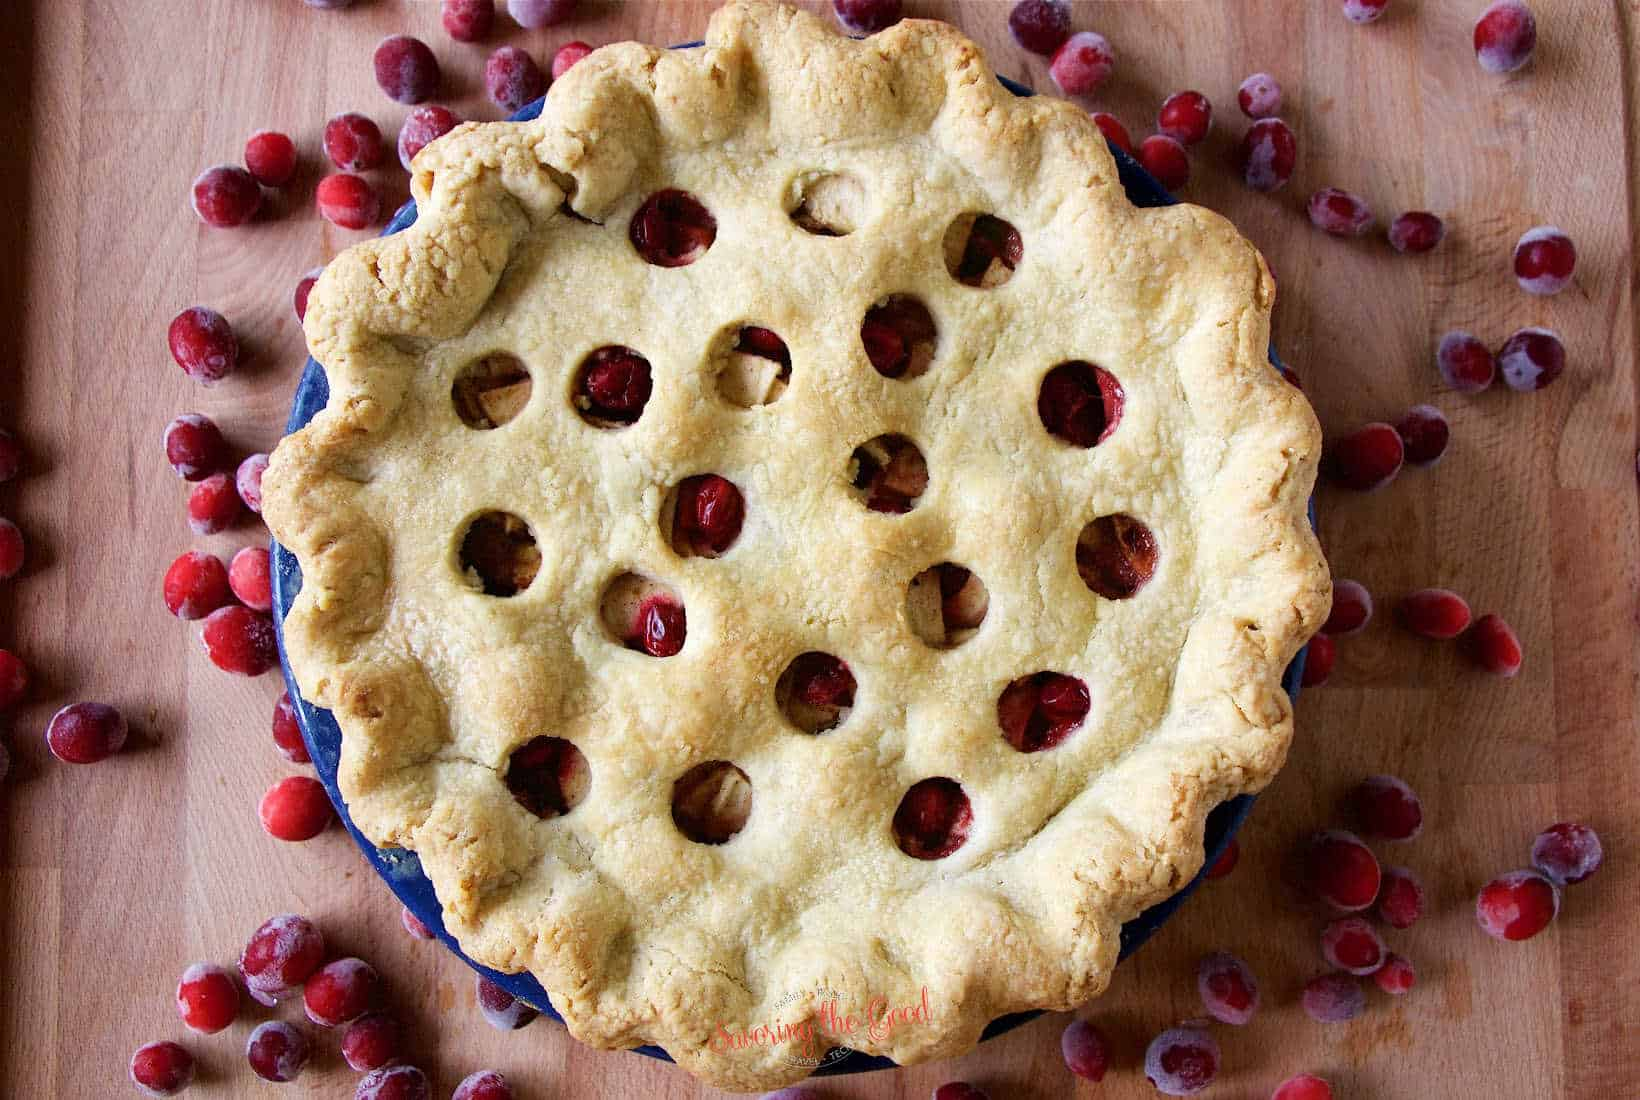 fully baked double crust apple cranberry pie in a blue pie plate on a wooden cutting board with whole cranberries scattered around